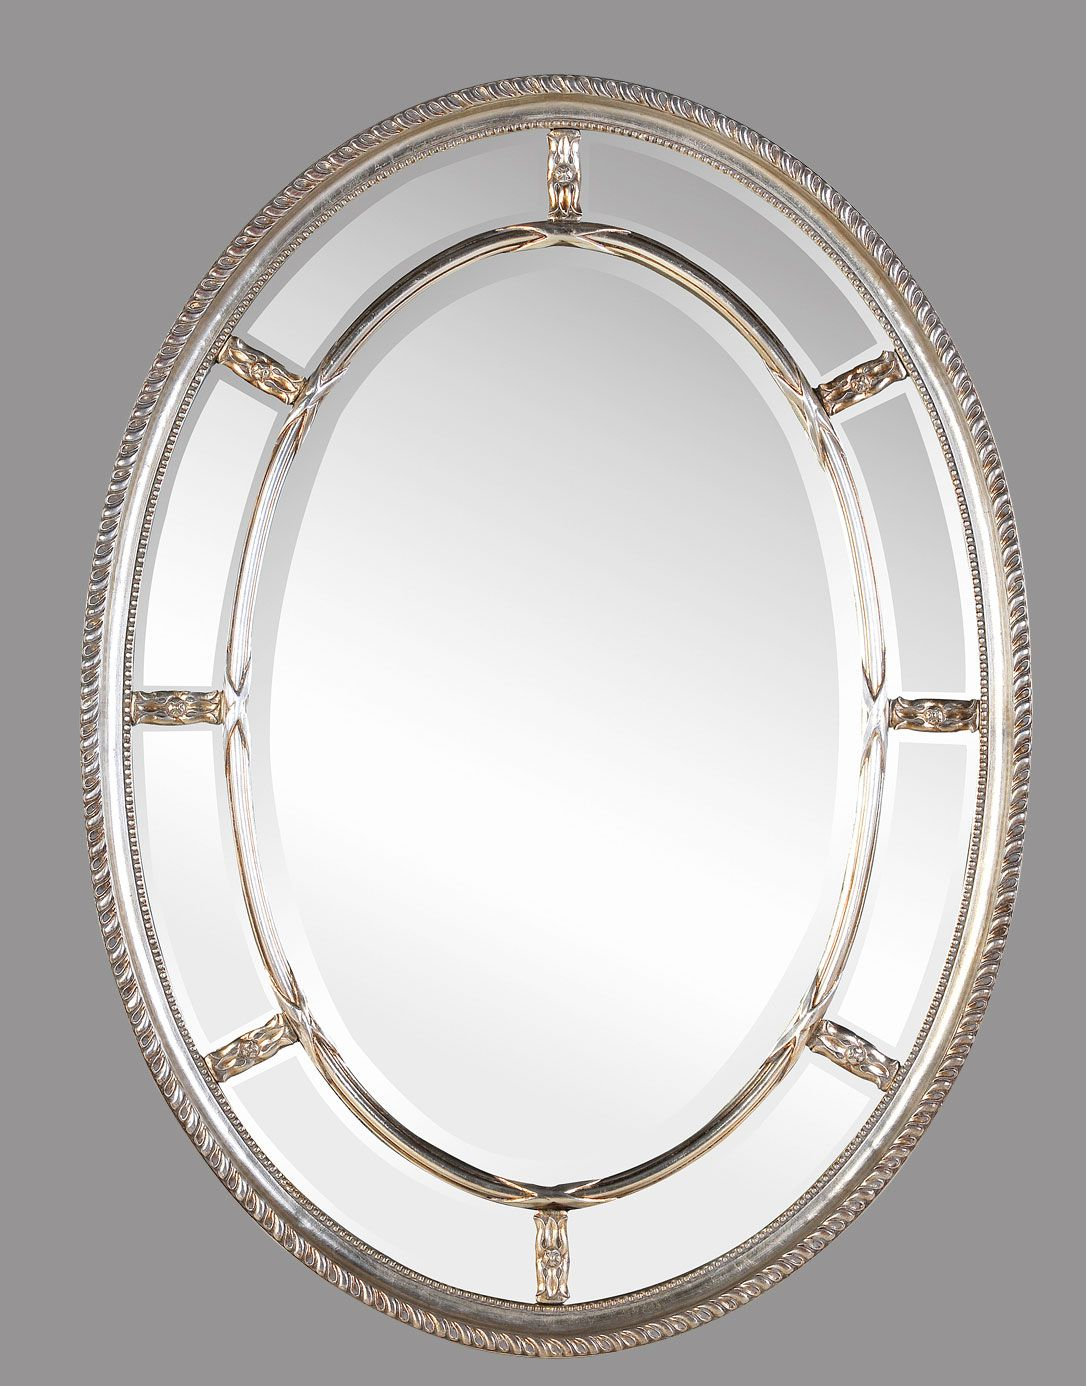 Oval mirrors for bathrooms - Bathroom Oval Mirrors Add Beauty And Elegance To Your Bathroom